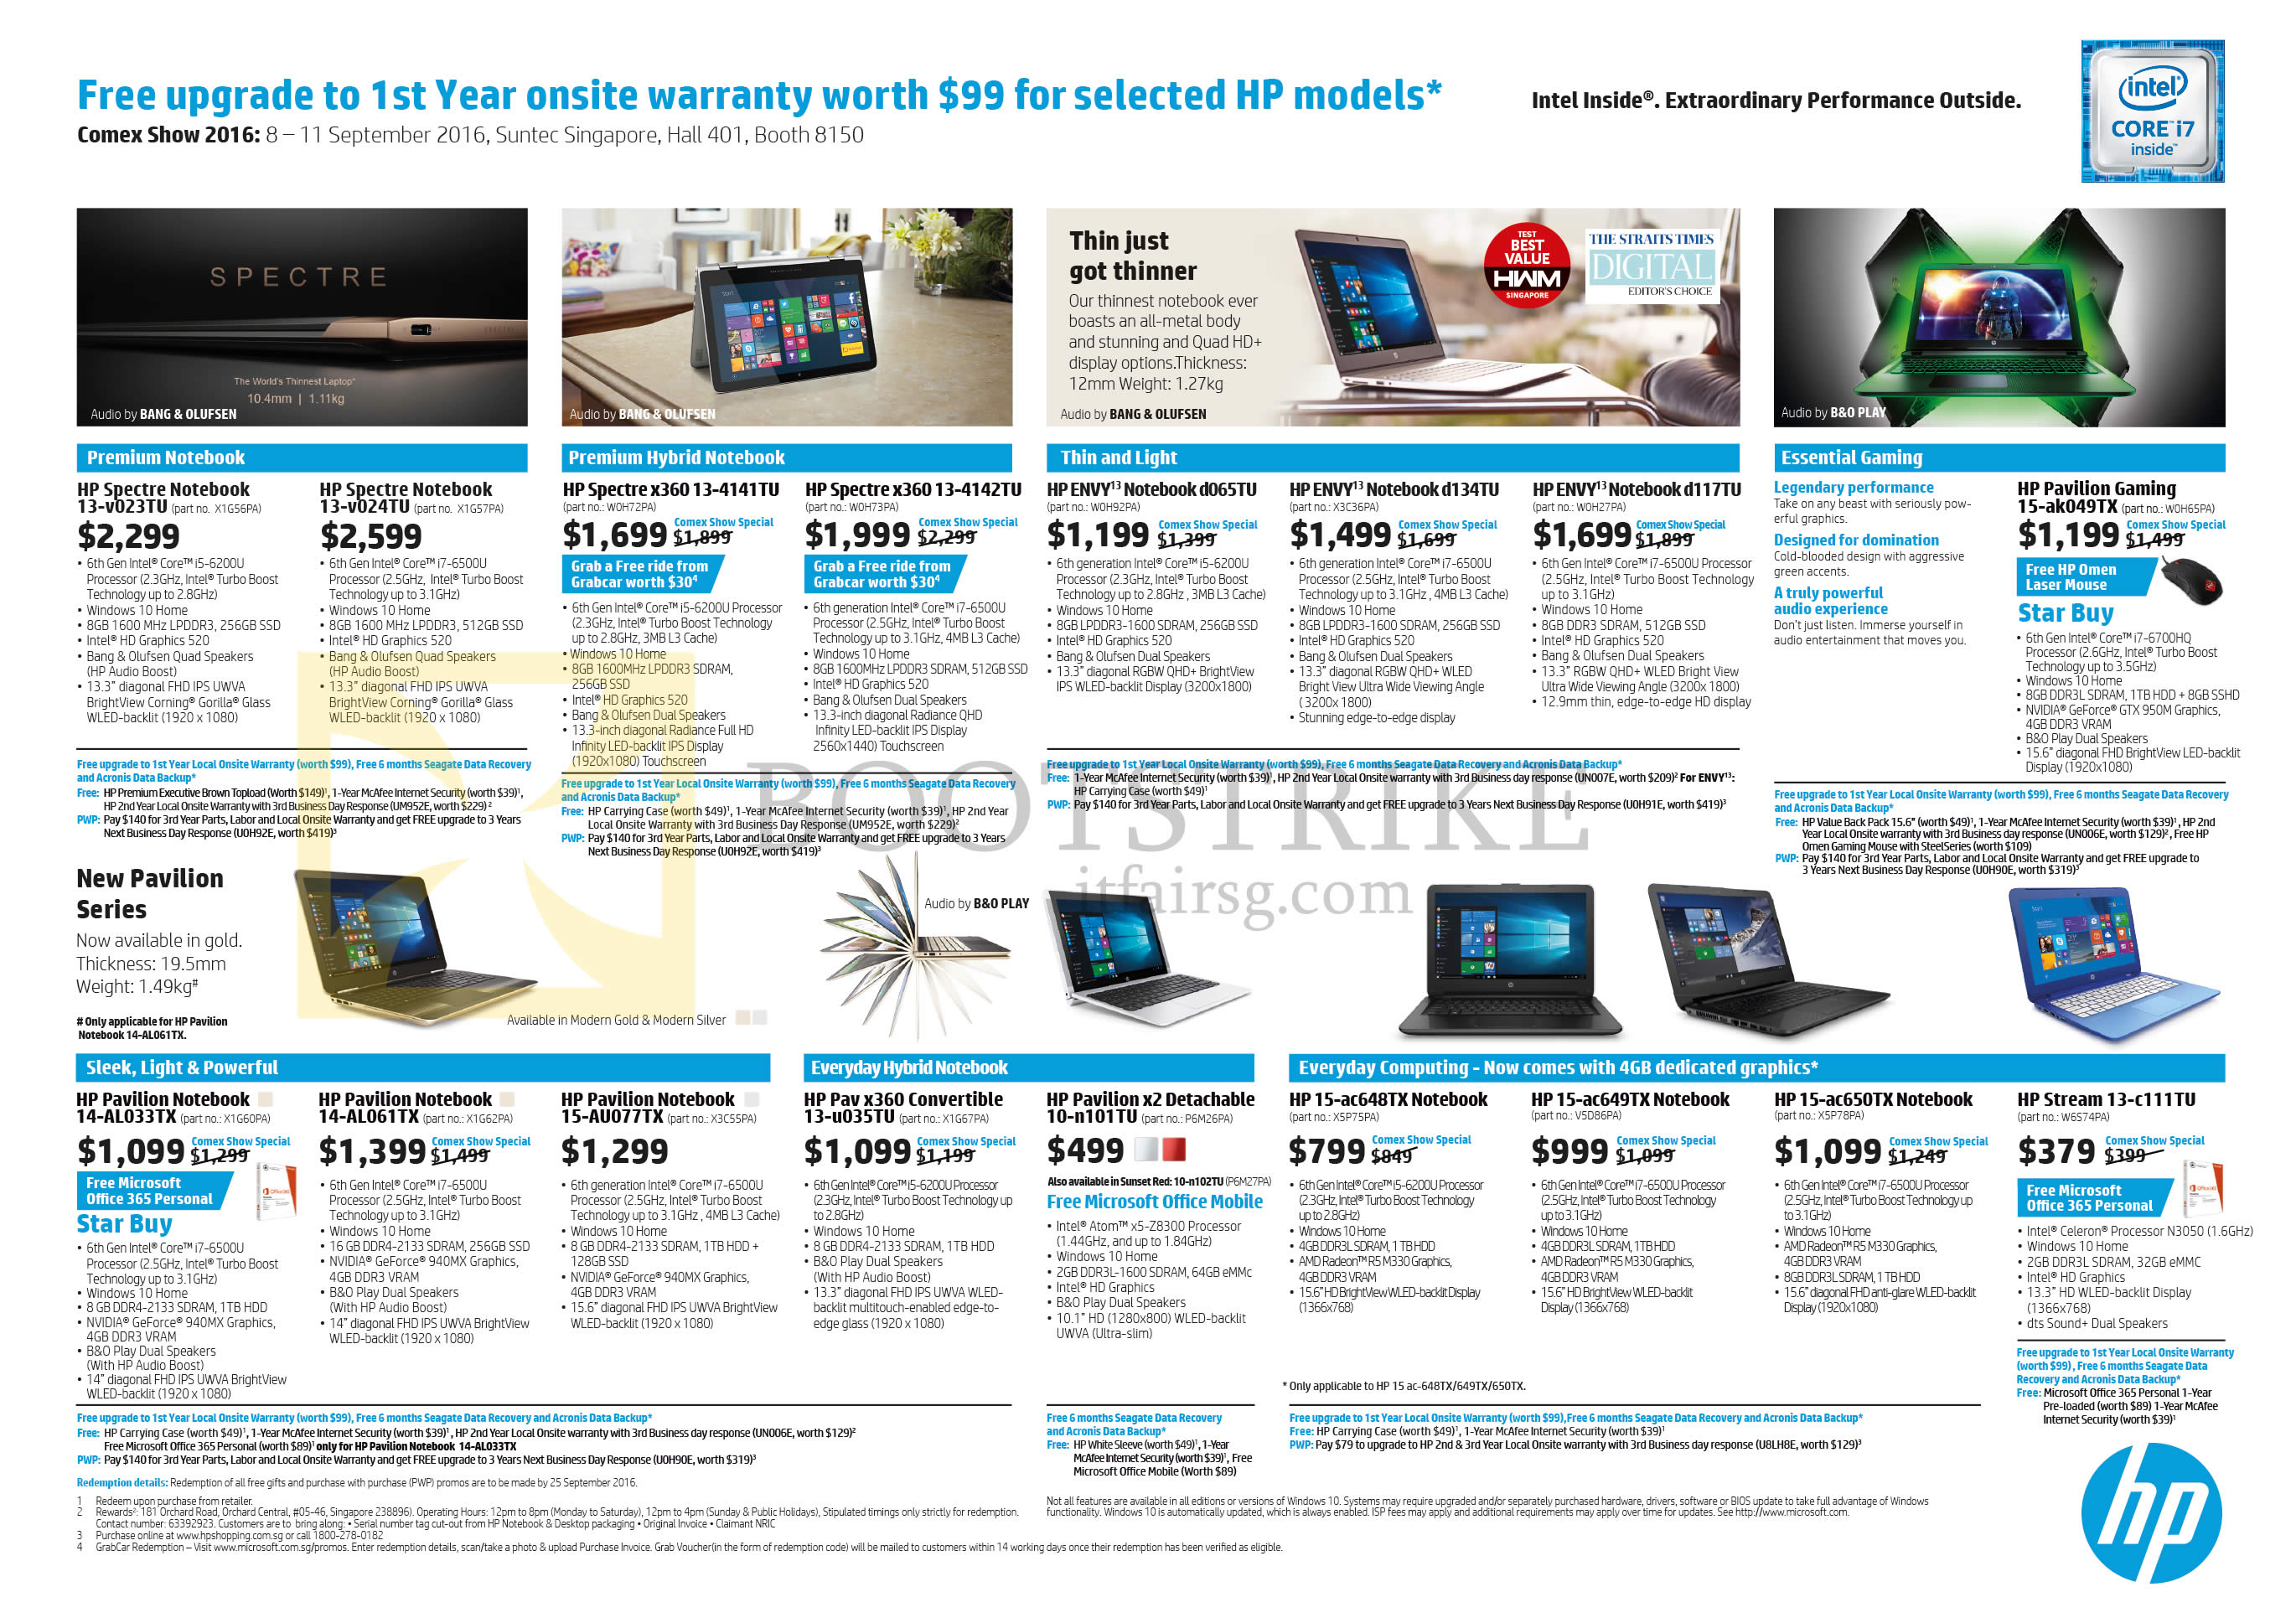 COMEX 2016 price list image brochure of HP Notebooks Spectre, Envy, Pavilion, Gaming, Stream Series